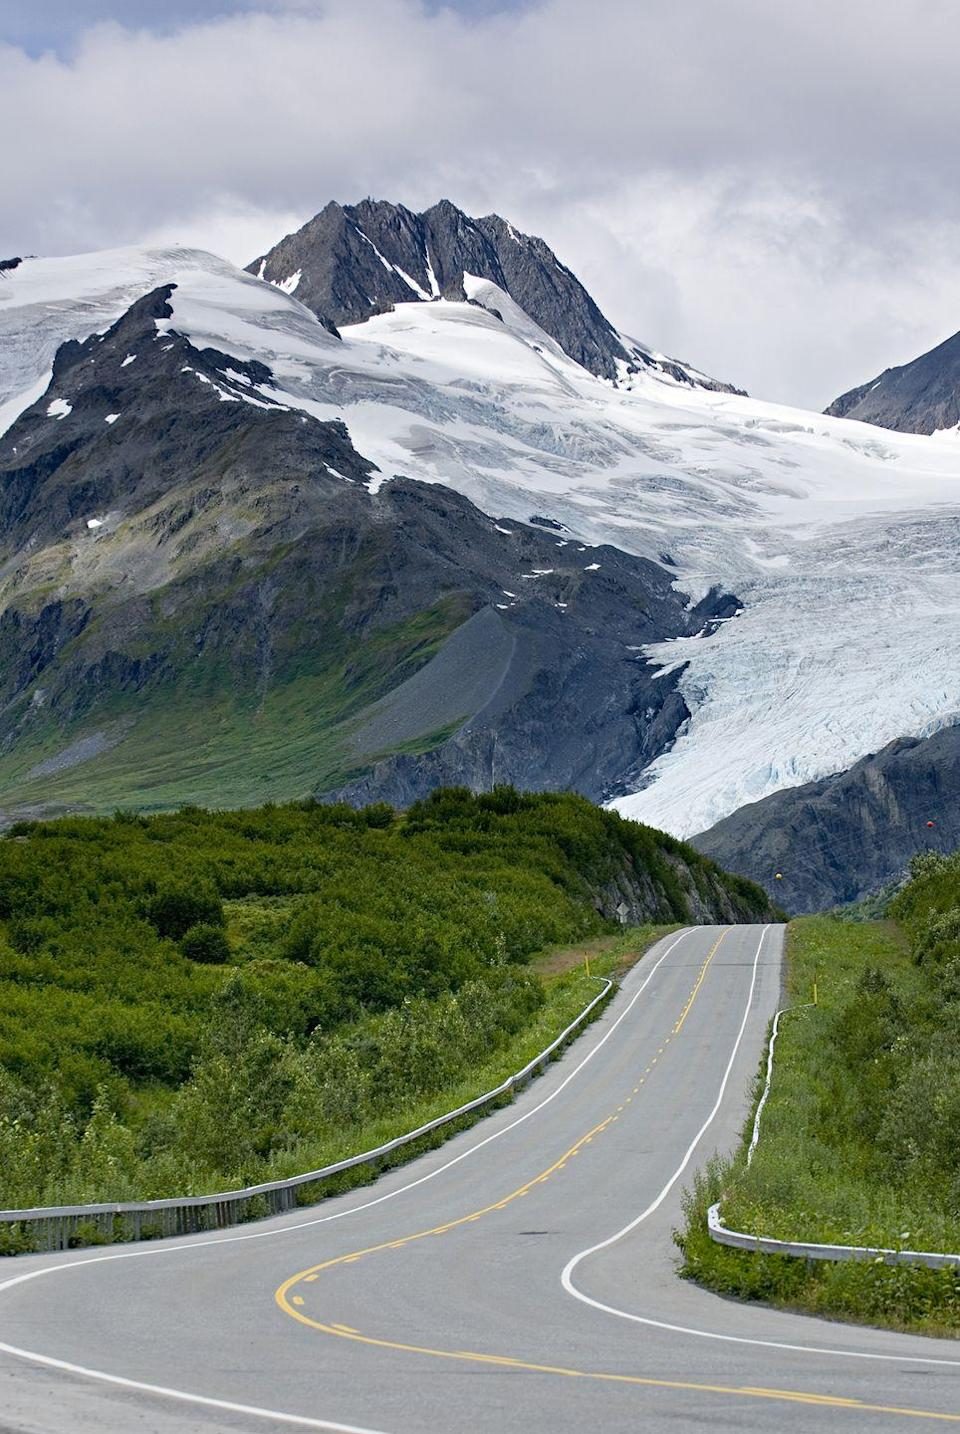 "<p><strong>The Drive:</strong> <a href=""https://www.tripadvisor.com/Attraction_Review-g28923-d276949-Reviews-Richardson_Highway-Alaska.html"" rel=""nofollow noopener"" target=""_blank"" data-ylk=""slk:Richardson Highway"" class=""link rapid-noclick-resp"">Richardson Highway</a></p><p><strong>The Scene:</strong> You may want to break this seven-hour, 360-mile journey up over the course of a couple days to ensure you can see everything along the way. On route from <a href=""https://www.tripadvisor.com/Tourism-g60826-Fairbanks_Alaska-Vacations.html"" rel=""nofollow noopener"" target=""_blank"" data-ylk=""slk:Fairbanks"" class=""link rapid-noclick-resp"">Fairbanks</a> to <a href=""https://www.tripadvisor.com/Tourism-g31156-Valdez_Alaska-Vacations.html"" rel=""nofollow noopener"" target=""_blank"" data-ylk=""slk:Valdez, Alaska"" class=""link rapid-noclick-resp"">Valdez, Alaska</a> you'll see <a href=""https://www.tripadvisor.com/Attraction_Review-g31156-d103561-Reviews-Keystone_Canyon-Valdez_Alaska.html"" rel=""nofollow noopener"" target=""_blank"" data-ylk=""slk:Keystone Canyon"" class=""link rapid-noclick-resp"">Keystone Canyon</a>, Worthing Glacier, Gulkana Glacier, the Wrangell-St. Elias National Park, and more.</p><p><strong>The Pit-Stop:</strong> Be sure to stop at <a href=""https://www.tripadvisor.com/Tourism-g31079-North_Pole_Alaska-Vacations.html"" rel=""nofollow noopener"" target=""_blank"" data-ylk=""slk:North Pole, Alaska"" class=""link rapid-noclick-resp"">North Pole, Alaska</a> to see the ""Santa Claus House"" and the Antler Academy.</p>"